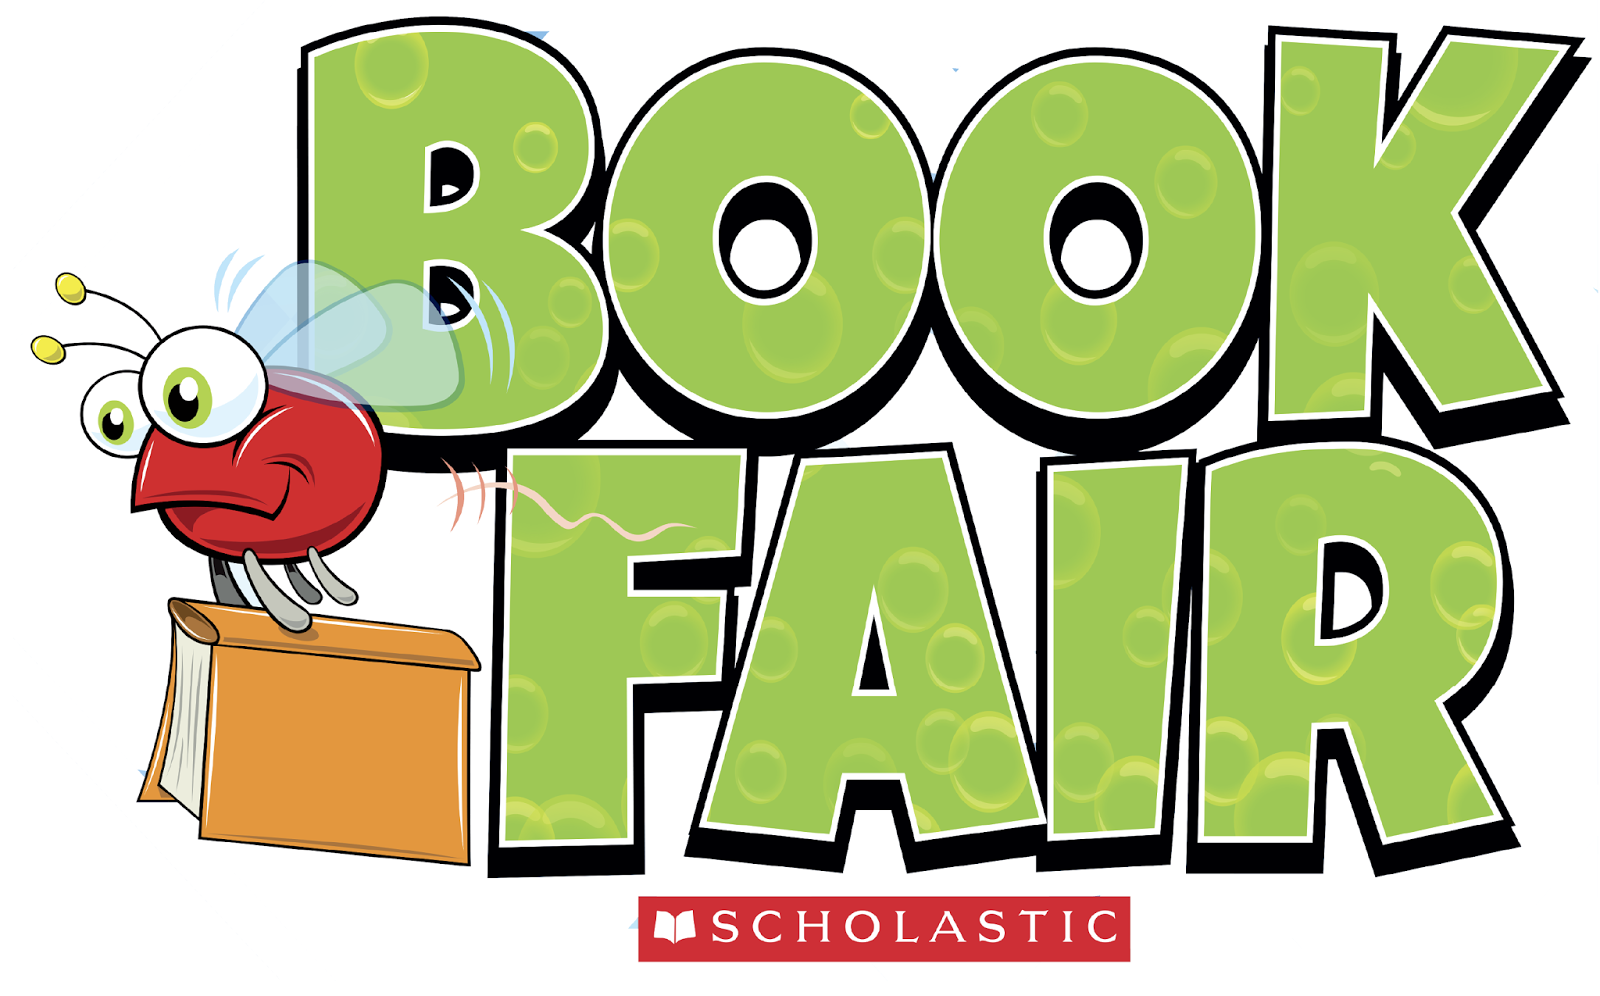 The Silverhill Blog: Book fair thanks